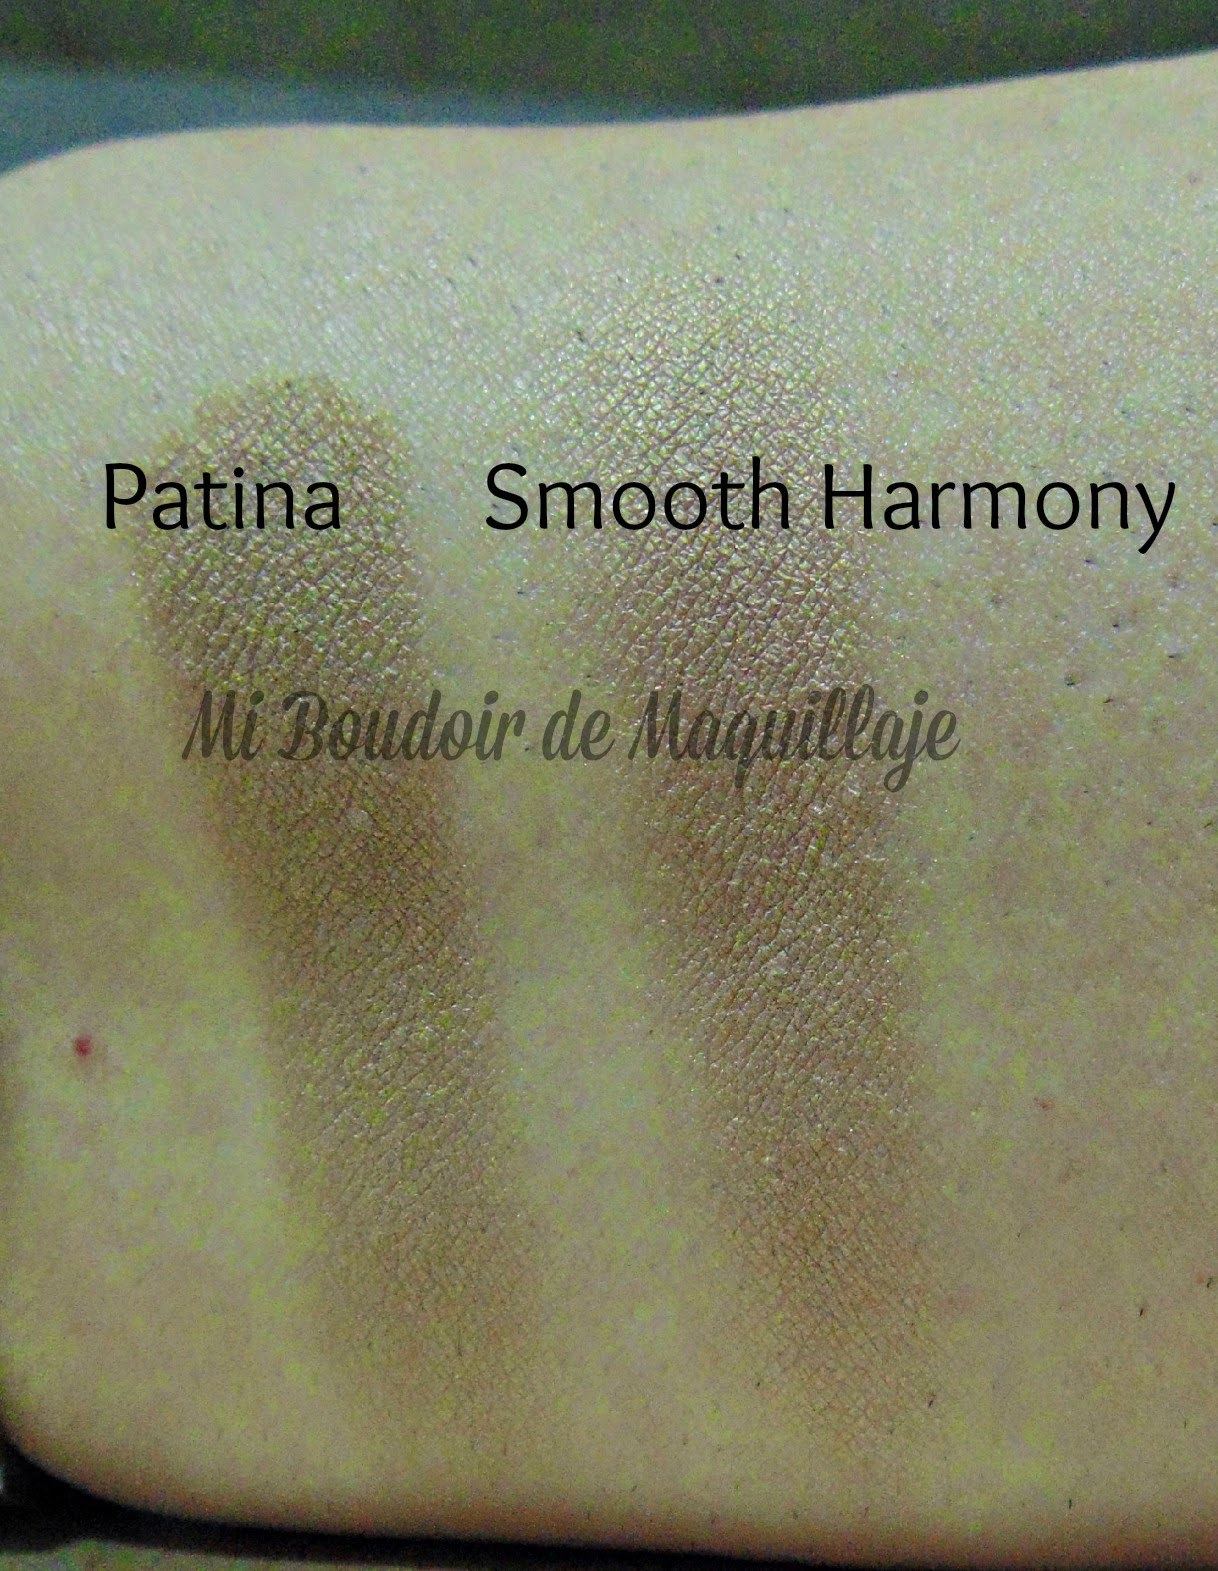 Smooth Harmony Zoeva vs Patina Mac